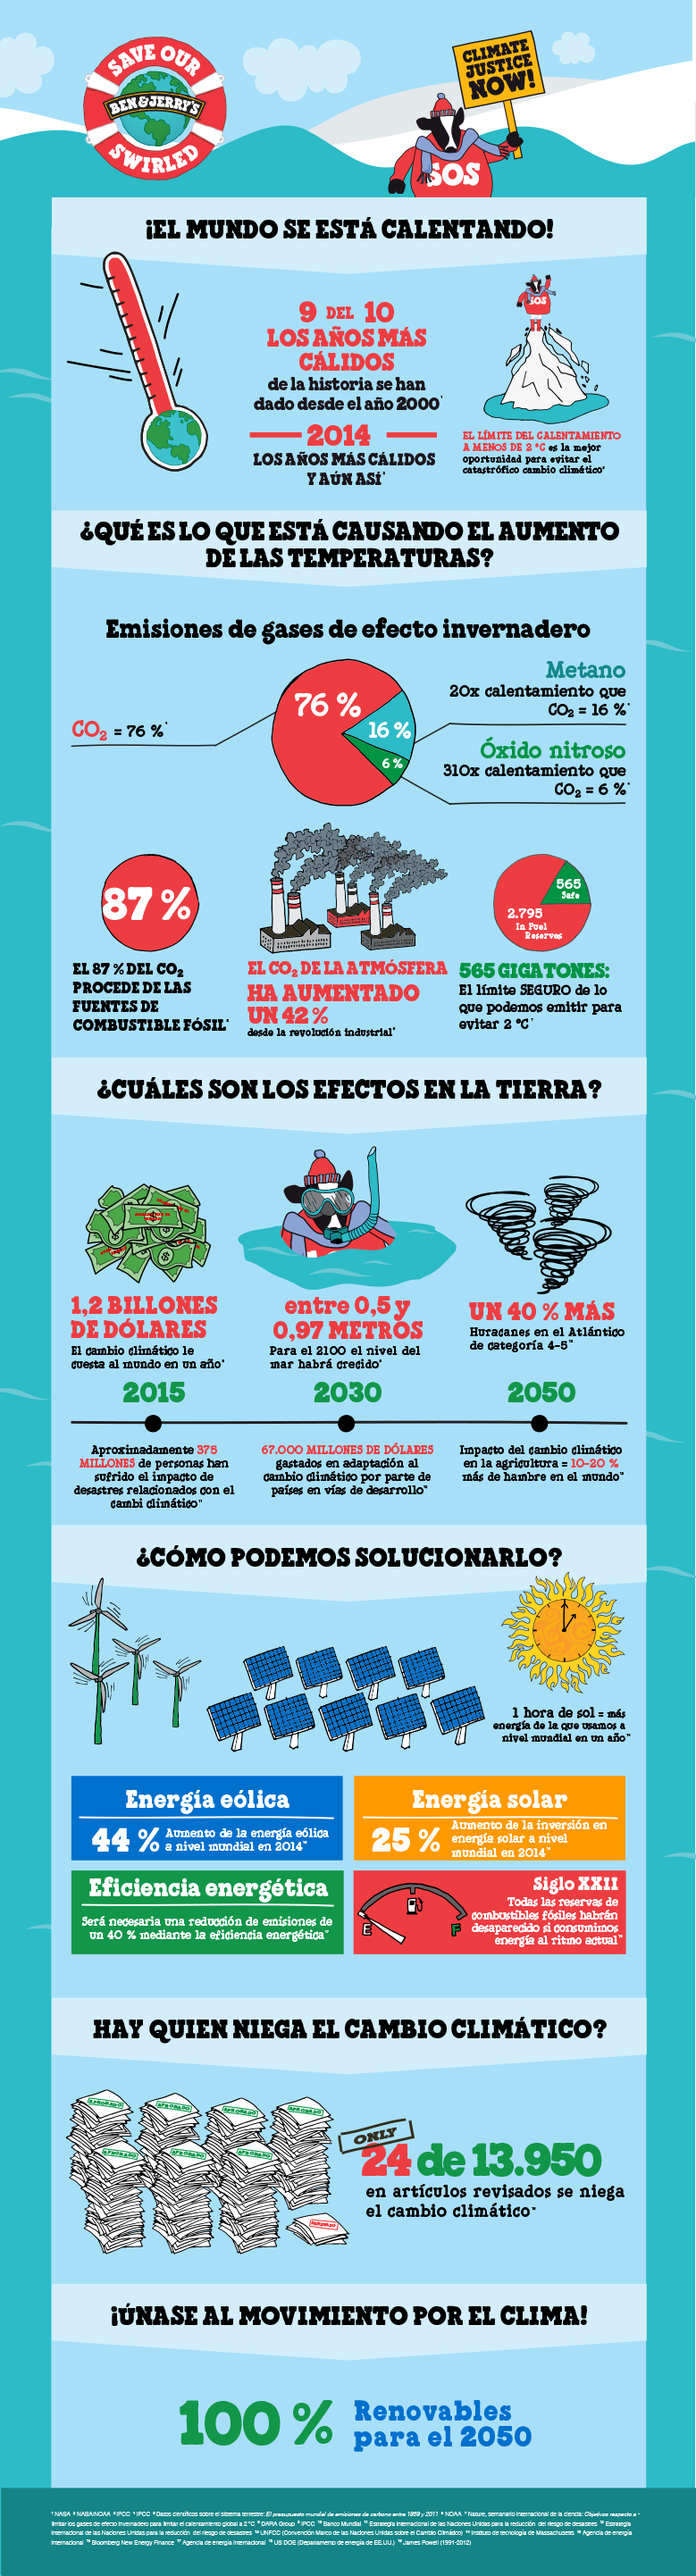 BJ_ClimateChange_Infographic_Spanish-(Spain)_TypeSet.png